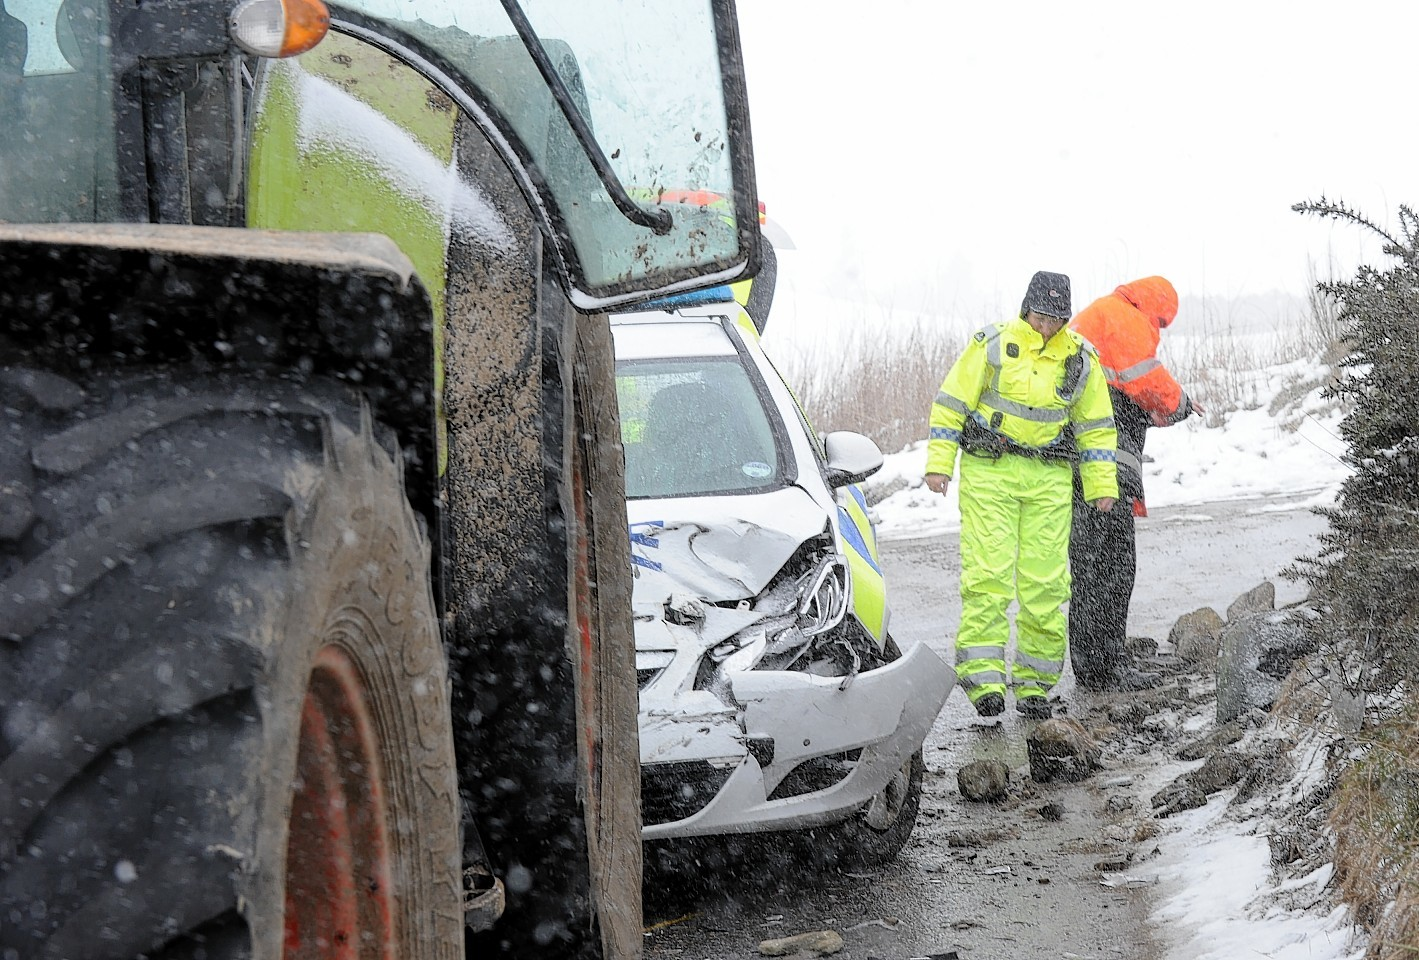 Scene of the crash involving the police car in Aberdeenshire